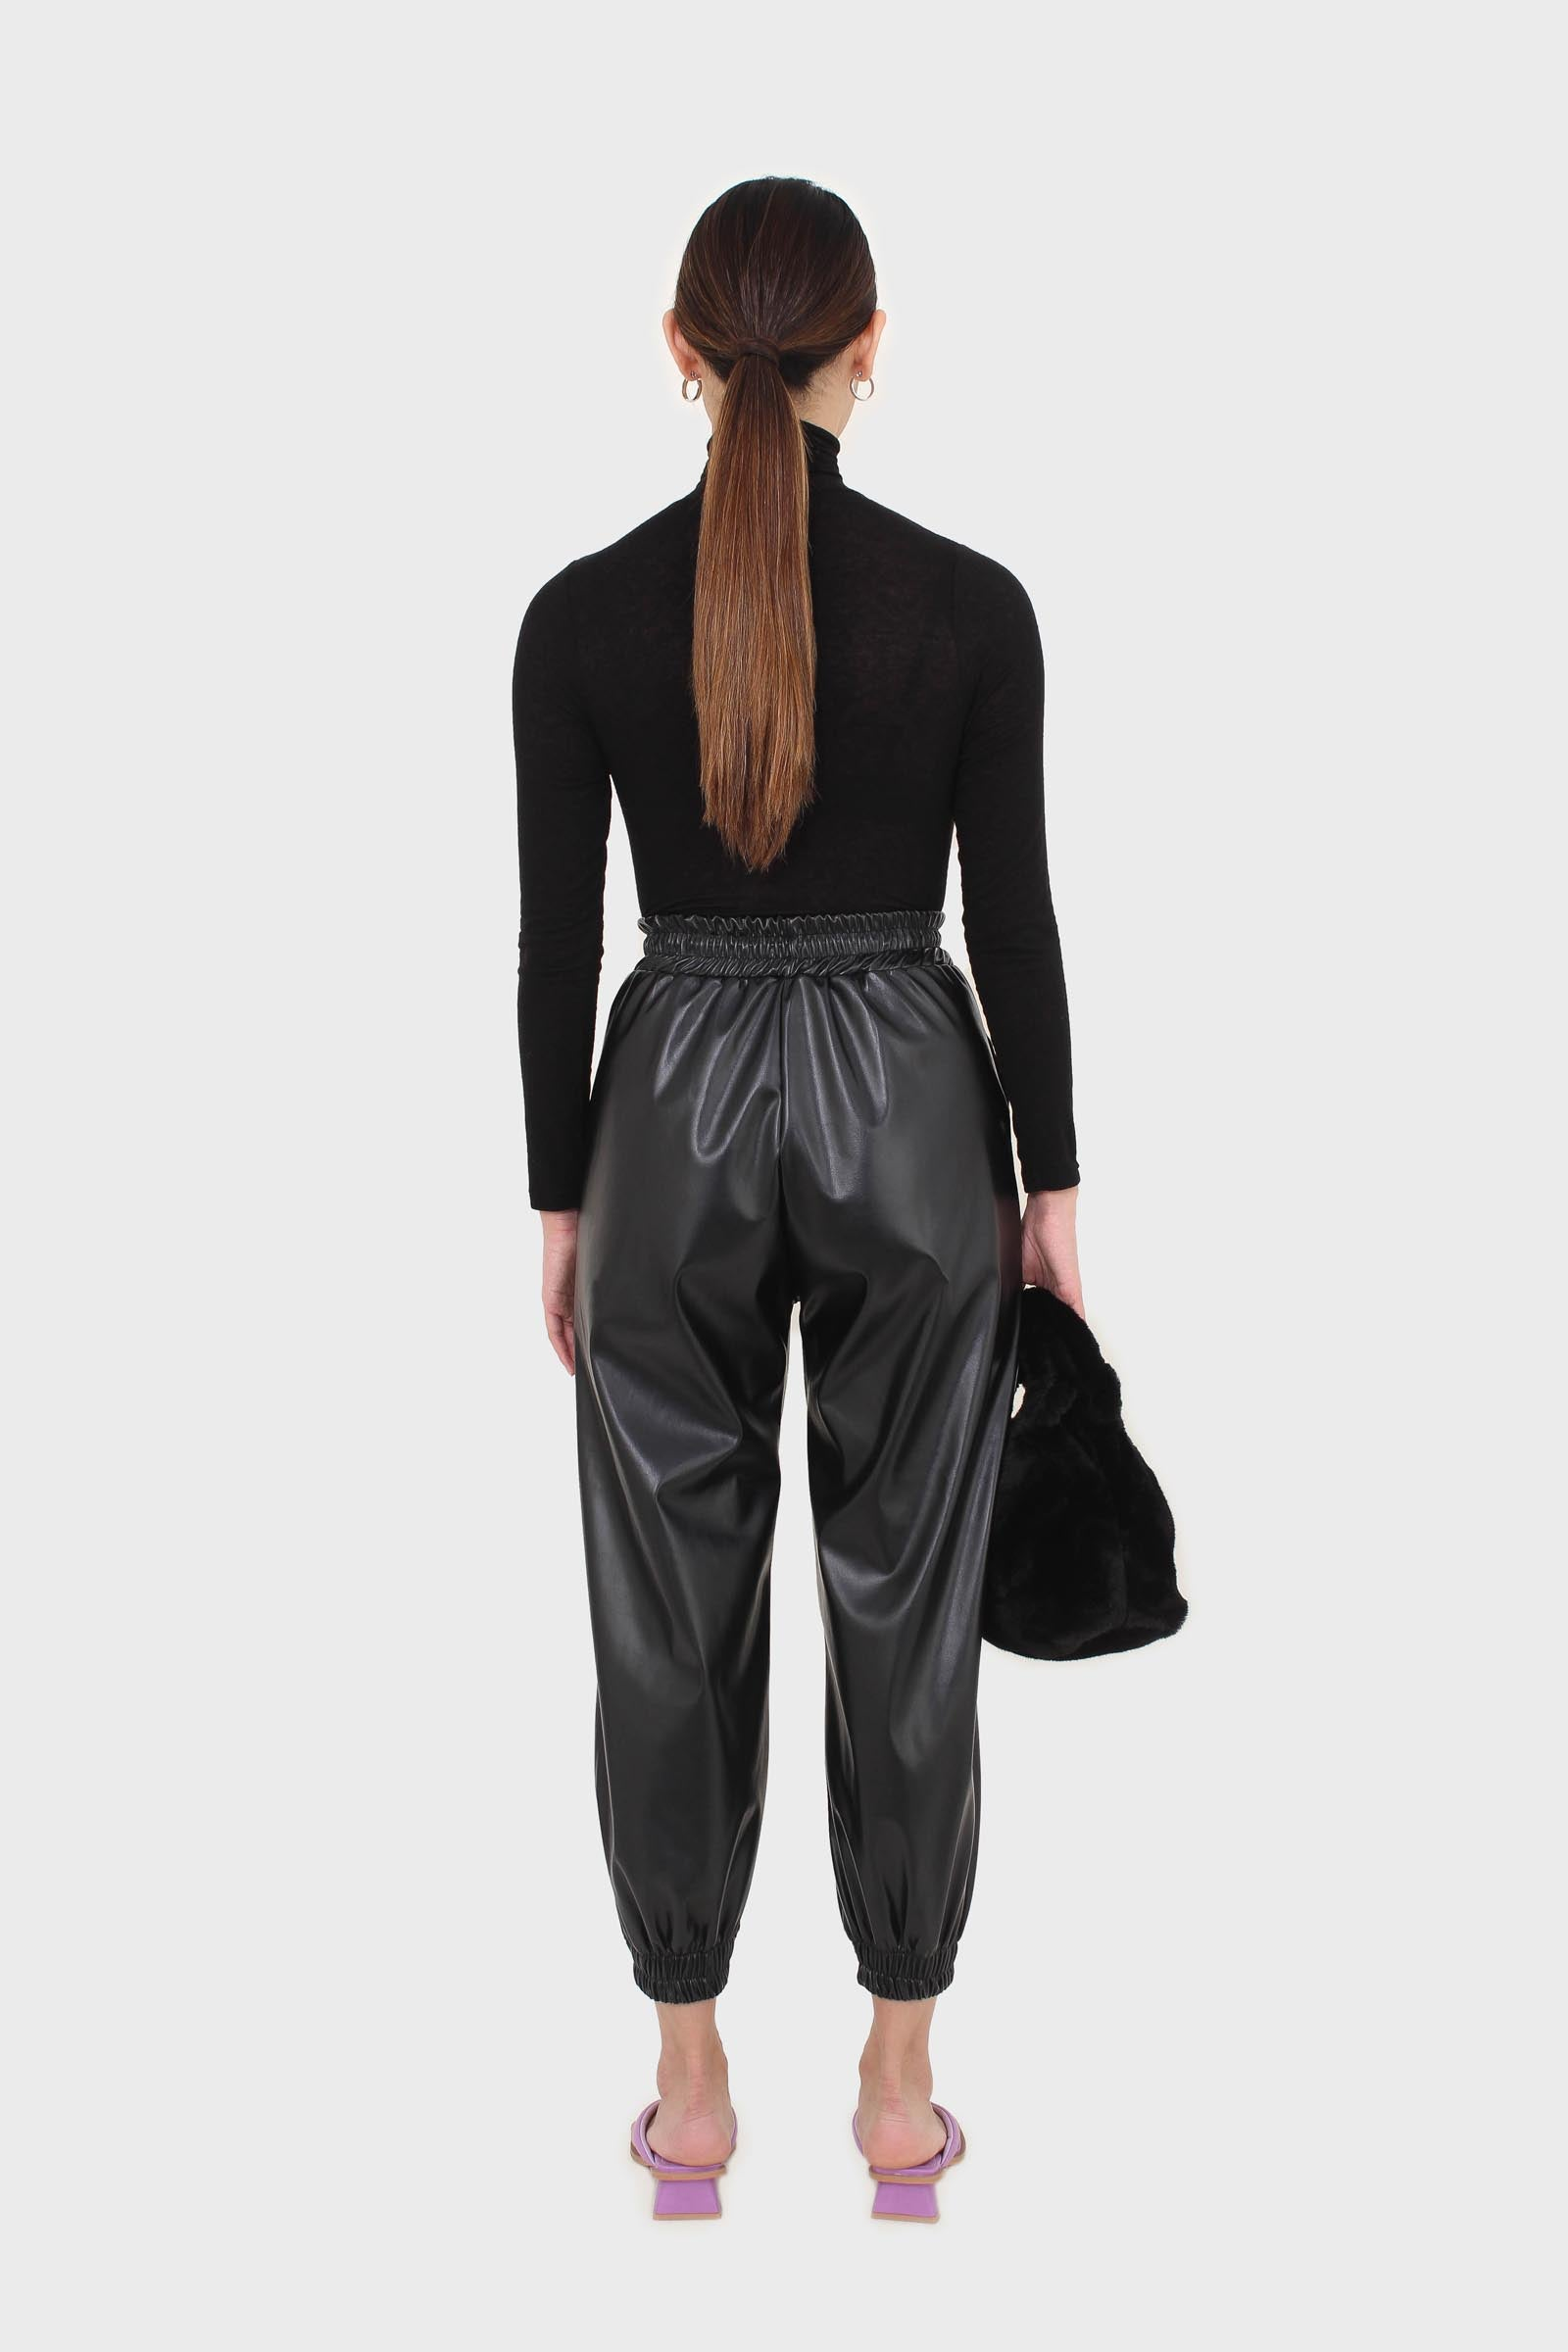 Black wool blended thin turtleneck top10